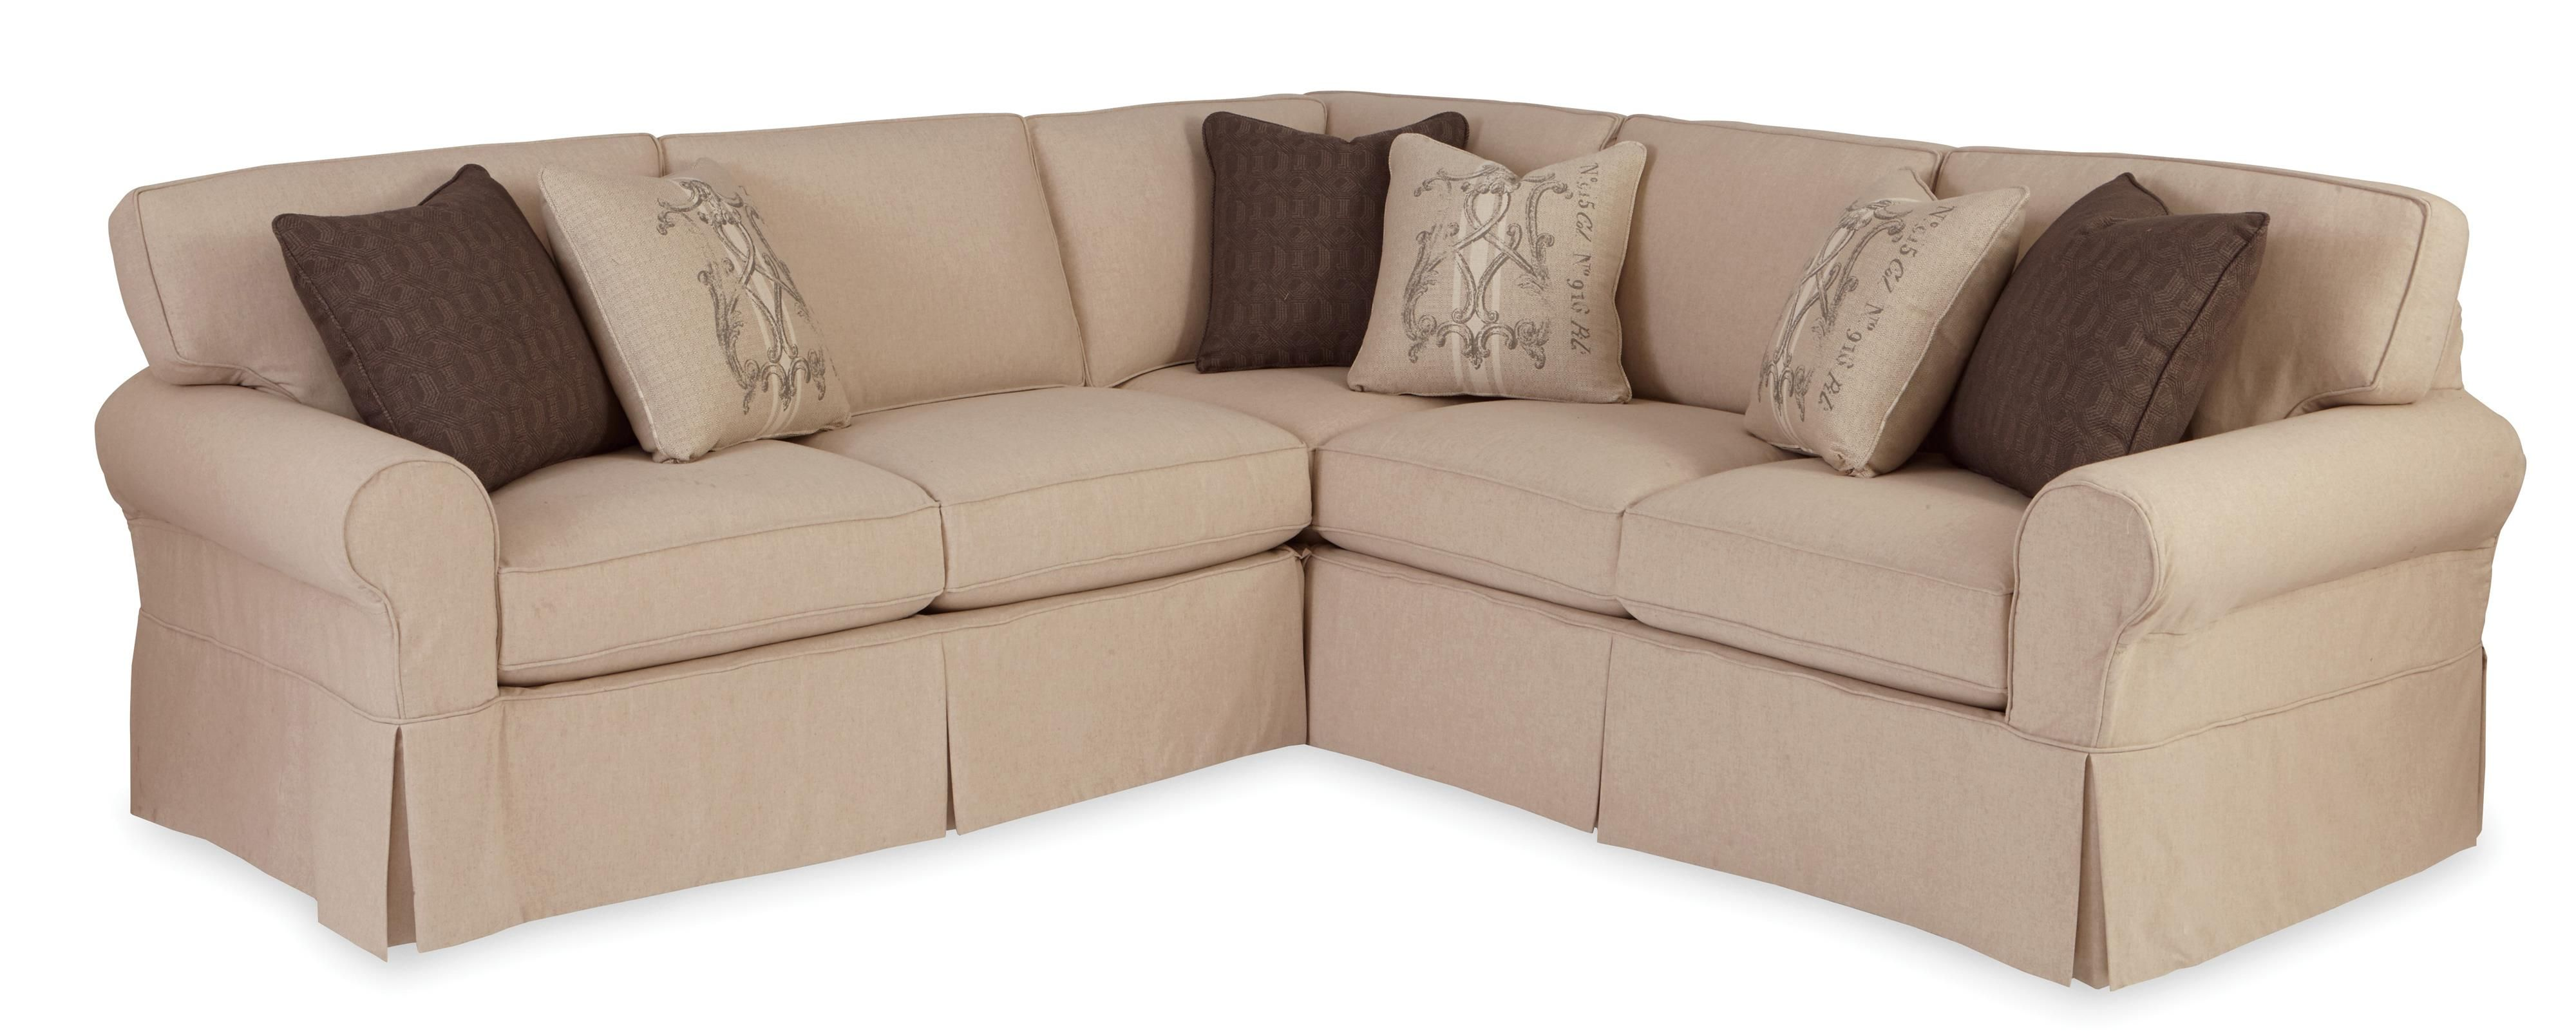 Charmant 9228 Two Piece Slipcovered Sectional Sofa With RAF Return Sofa By  Craftmaster At Bullard Furniture